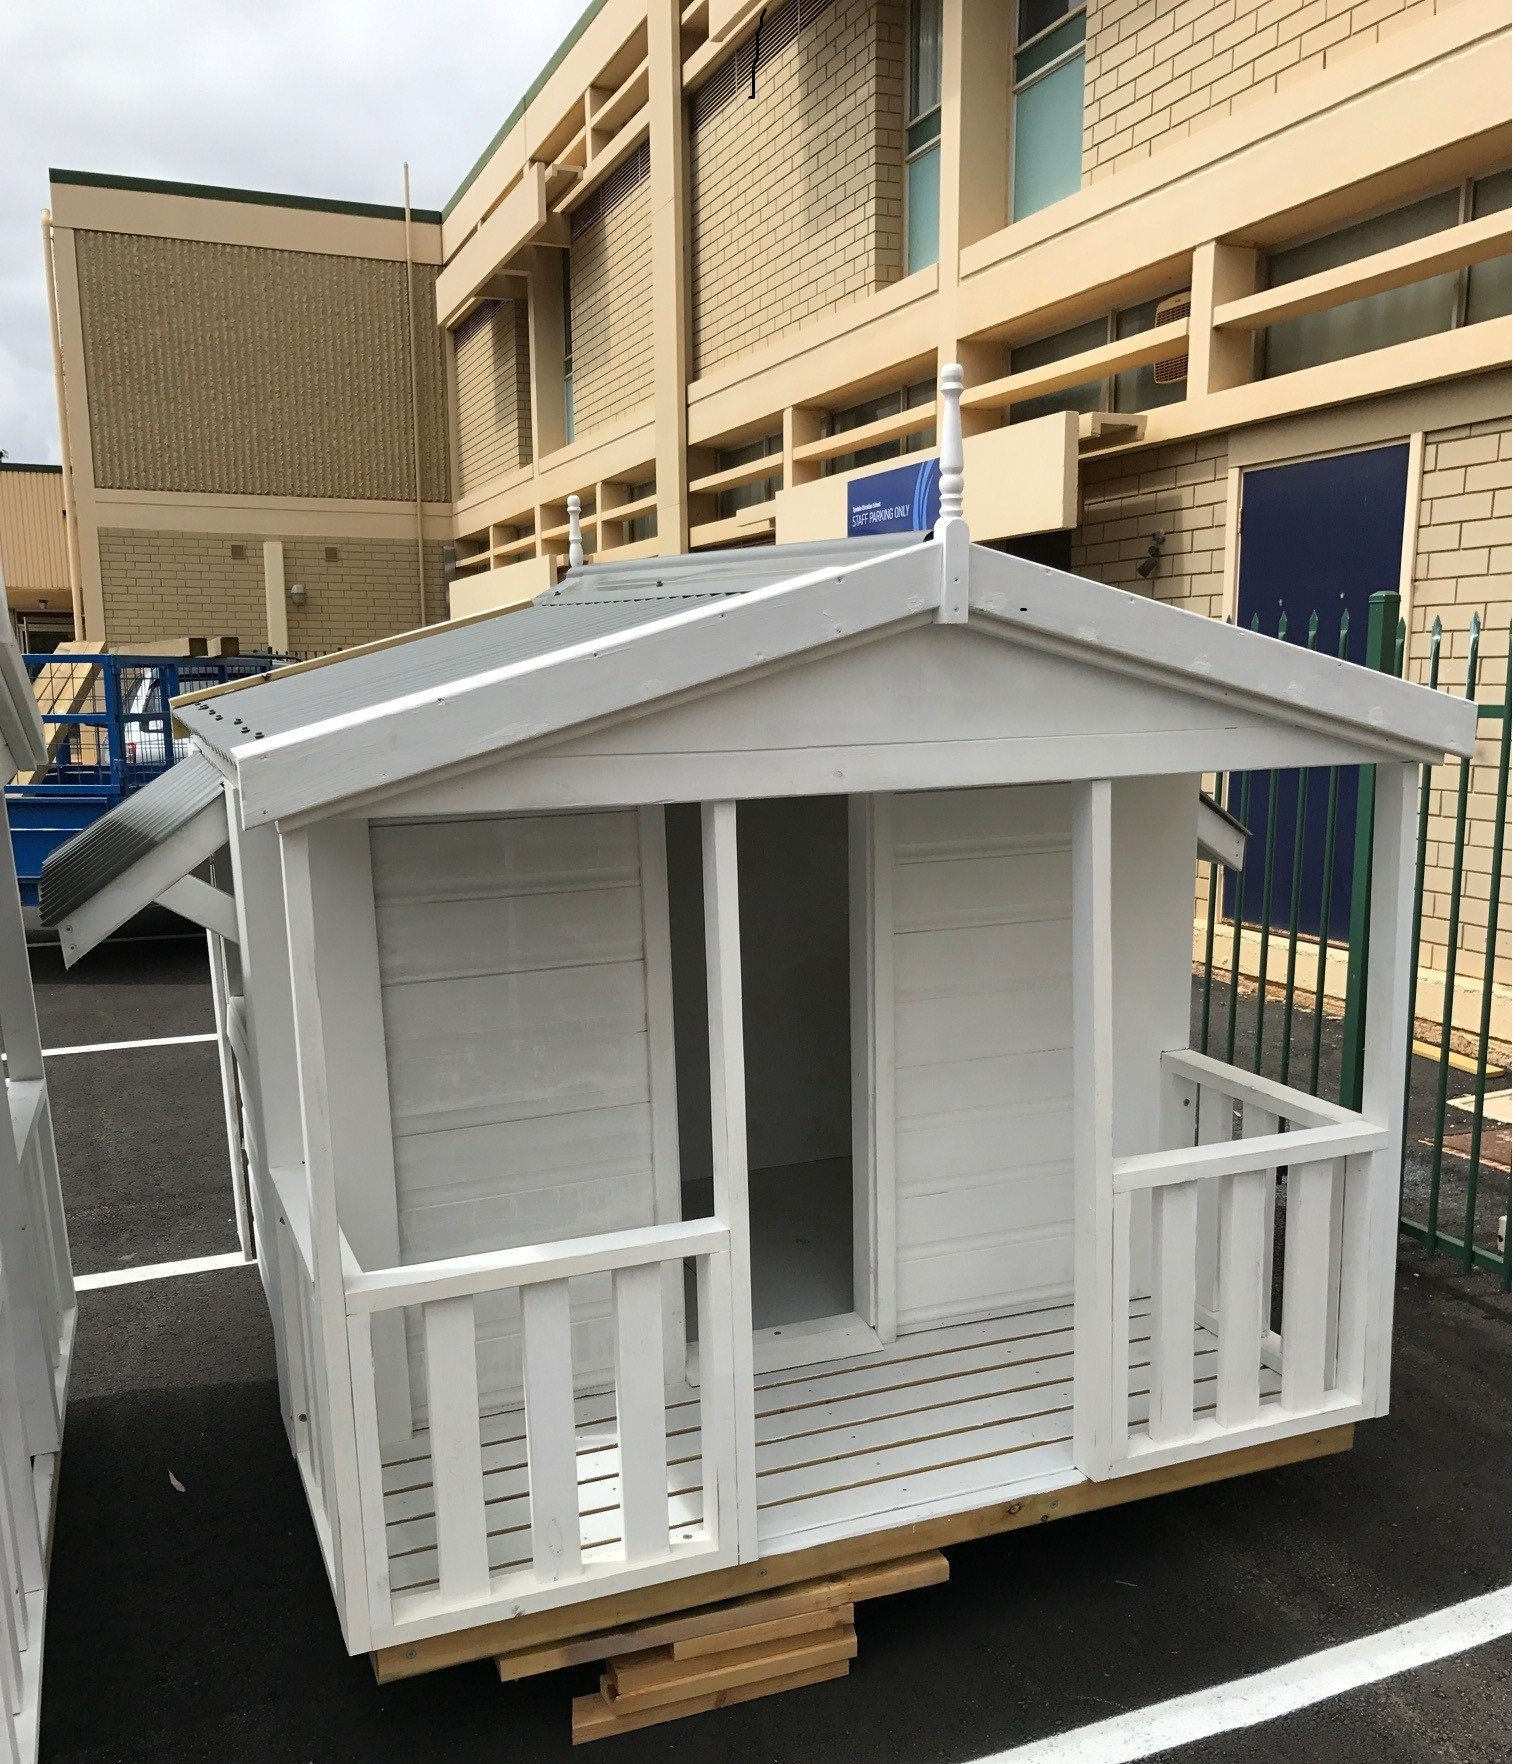 Harcourts South Australia to launch interactive 'Cubby House Project'